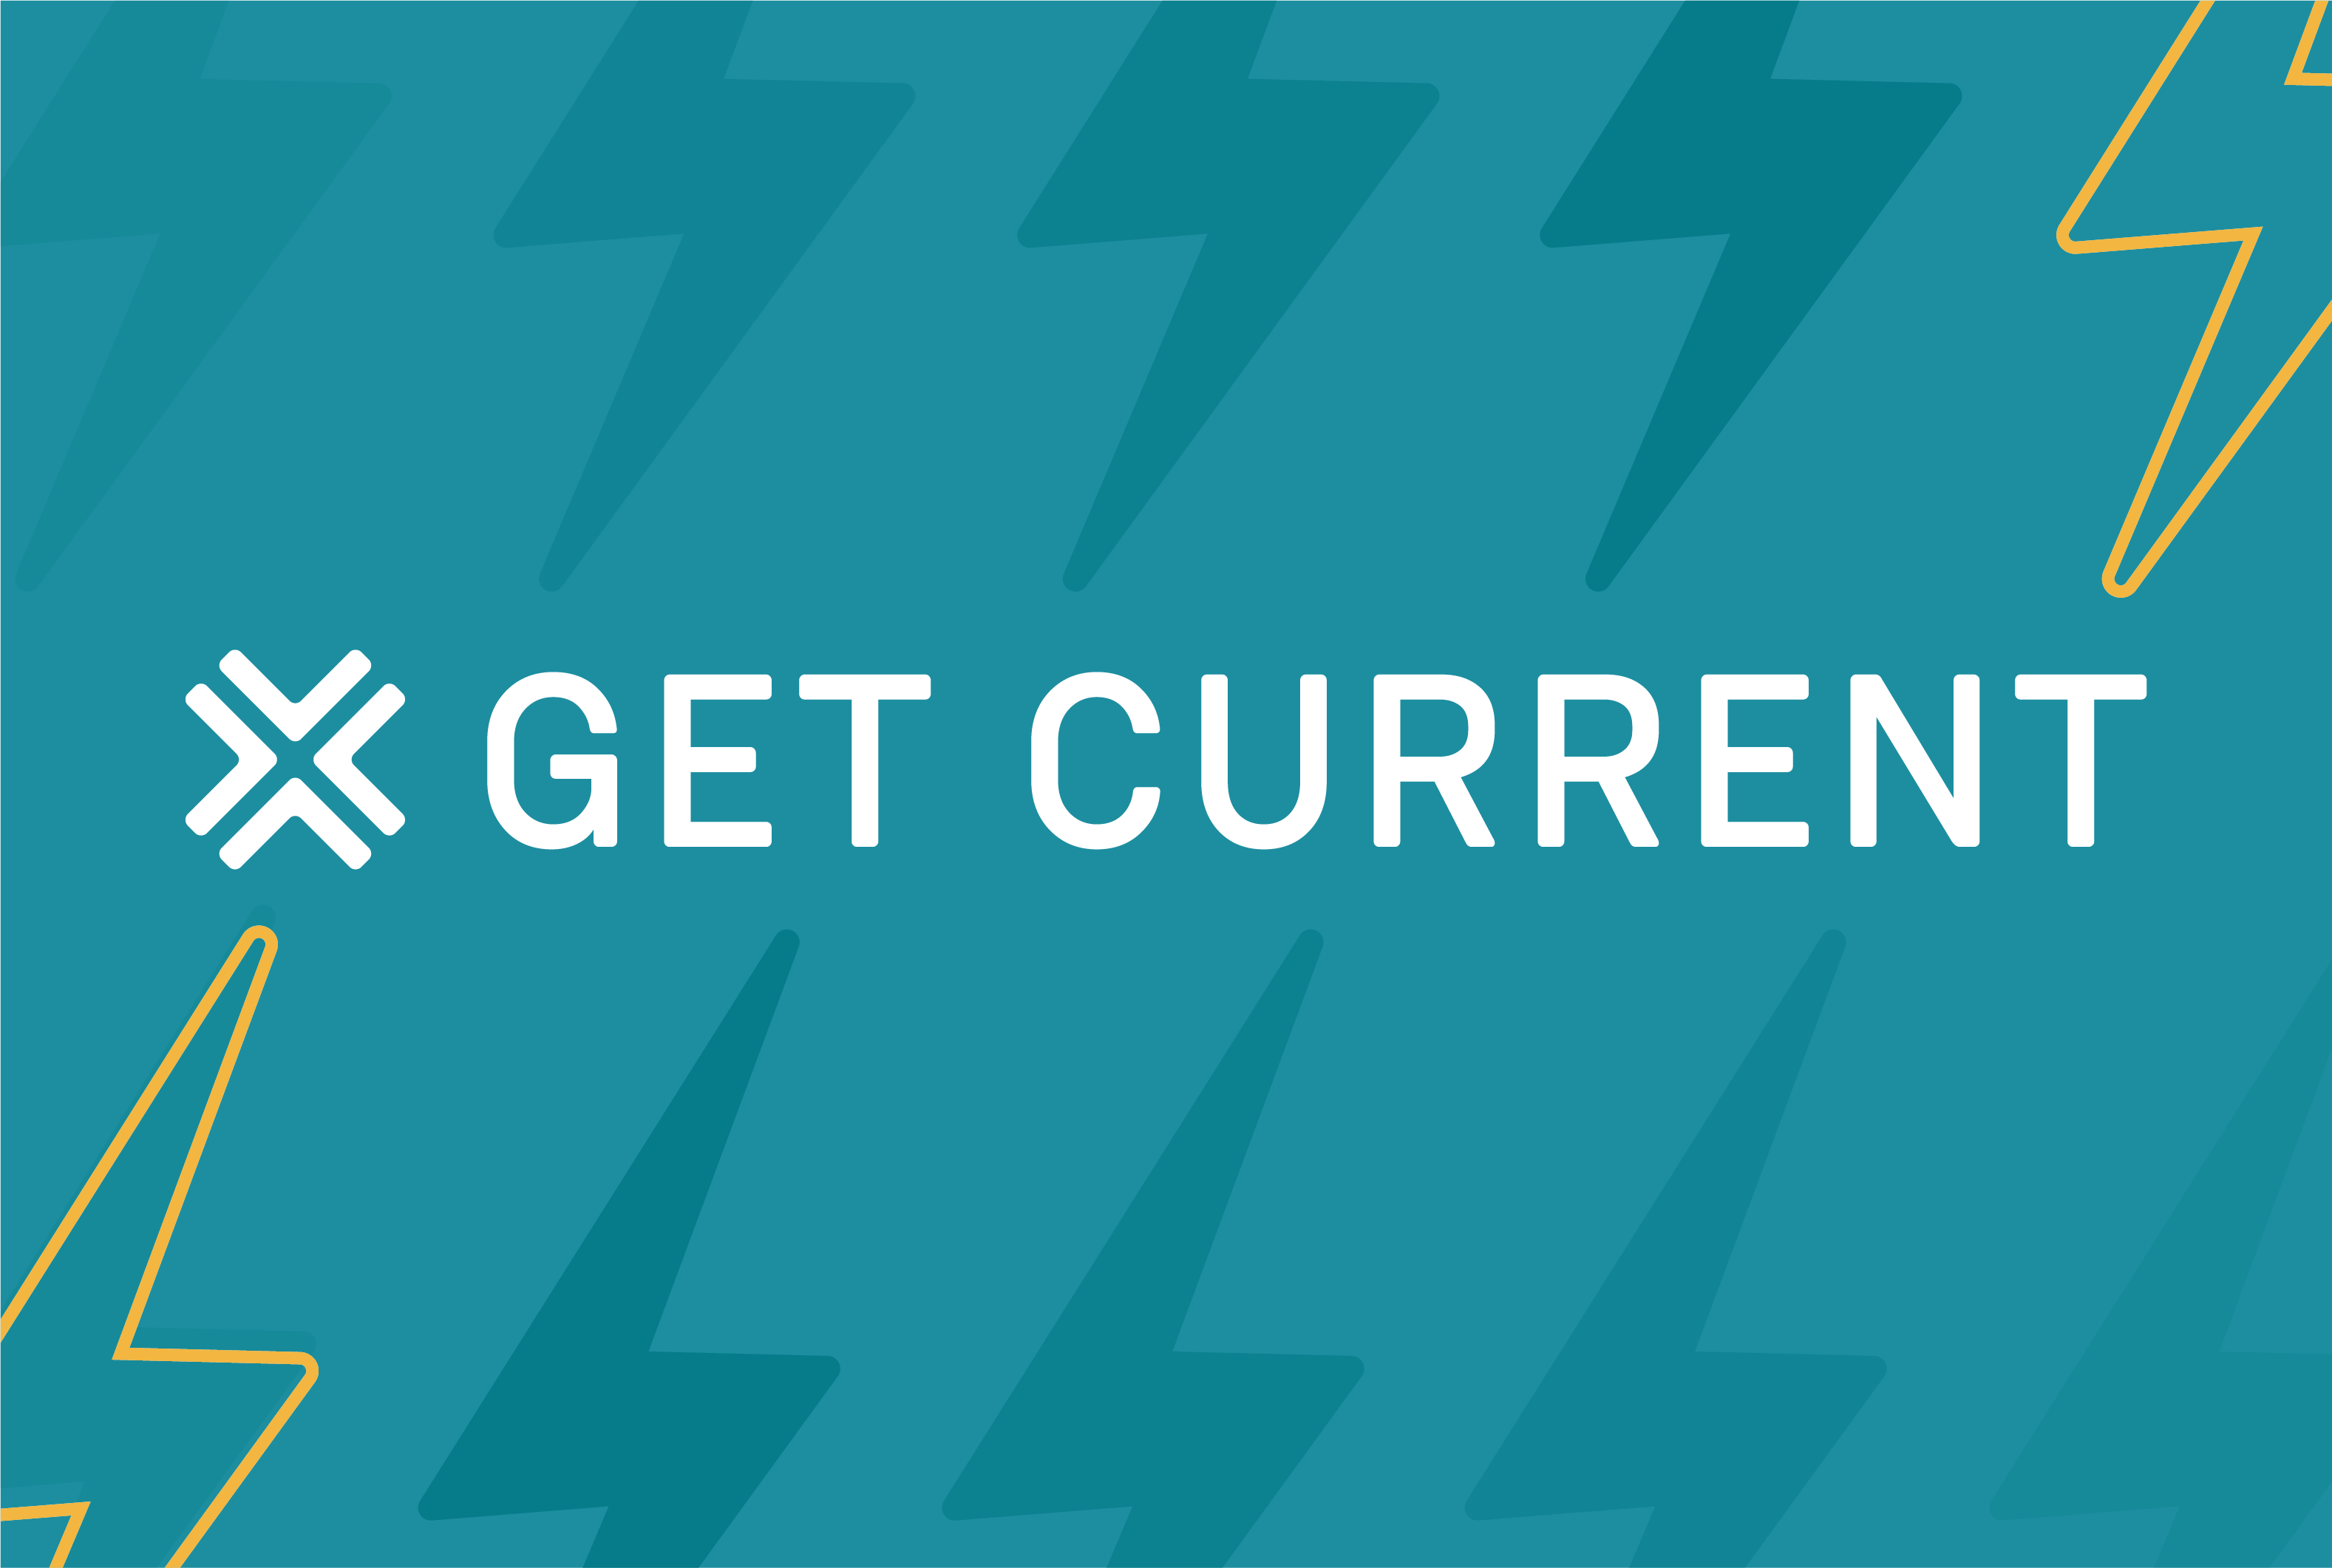 Masthead that says Get Current and has a yellow lightning bolt through it.